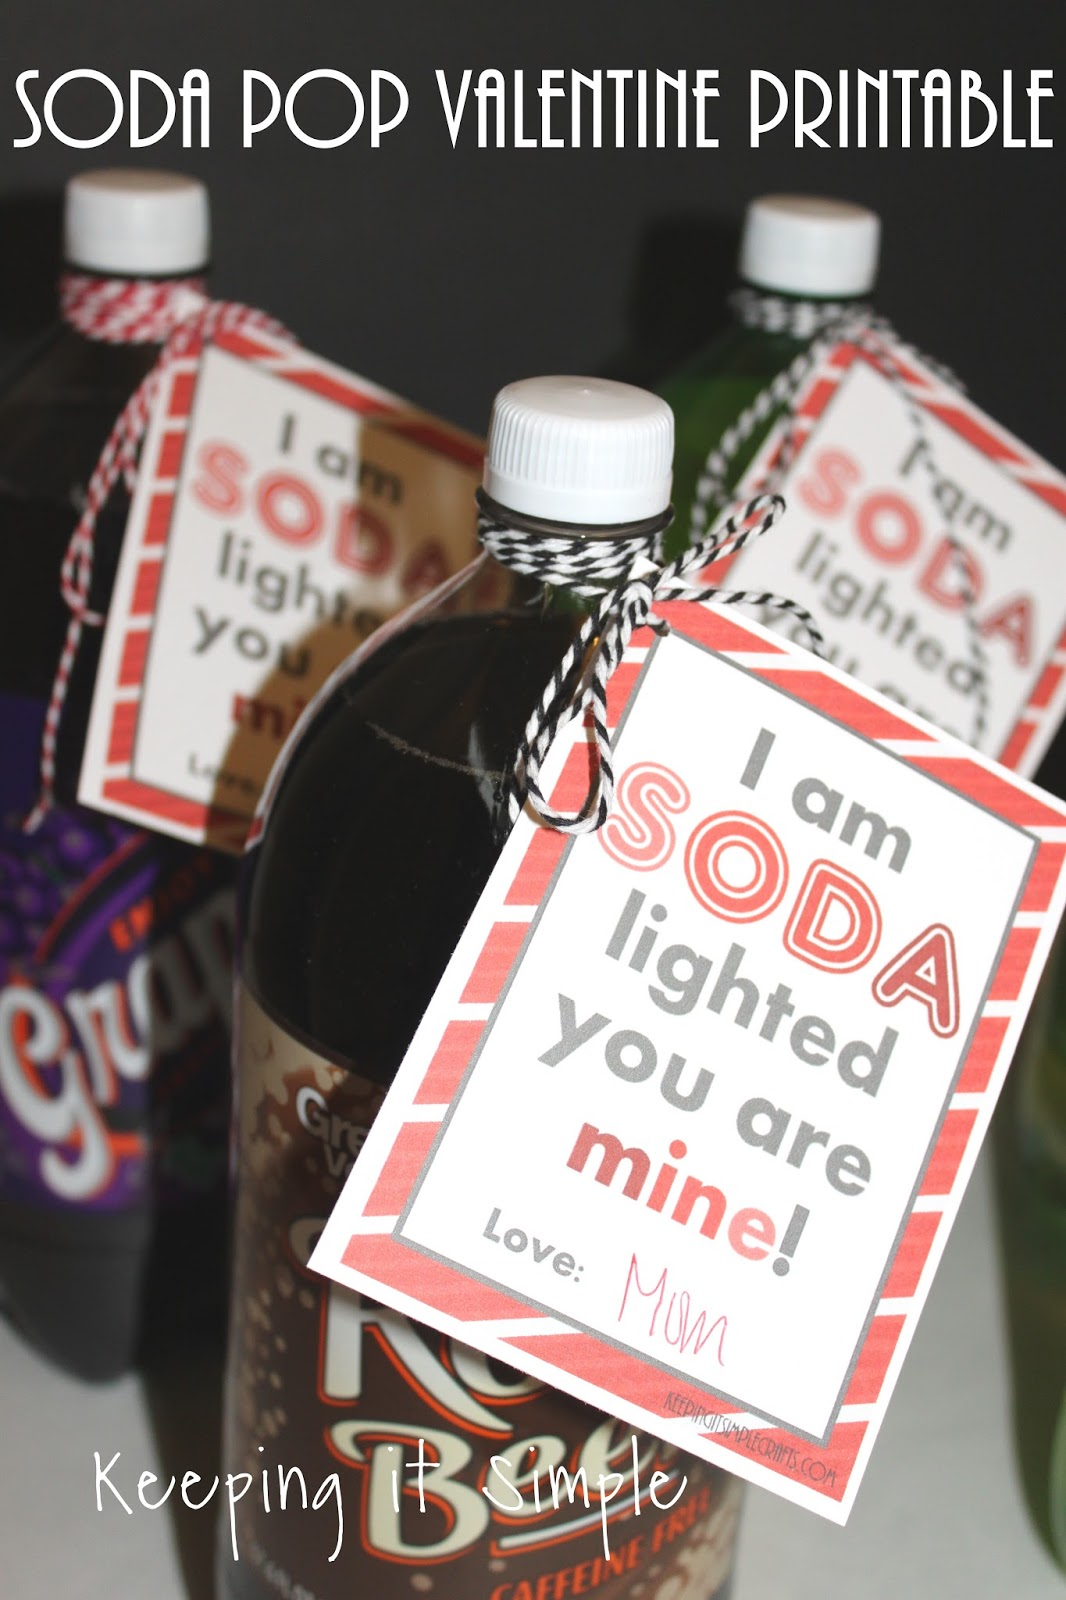 Soda Pop Valentine With Printable For Kids Or Teachers Keeping It Simple Crafts